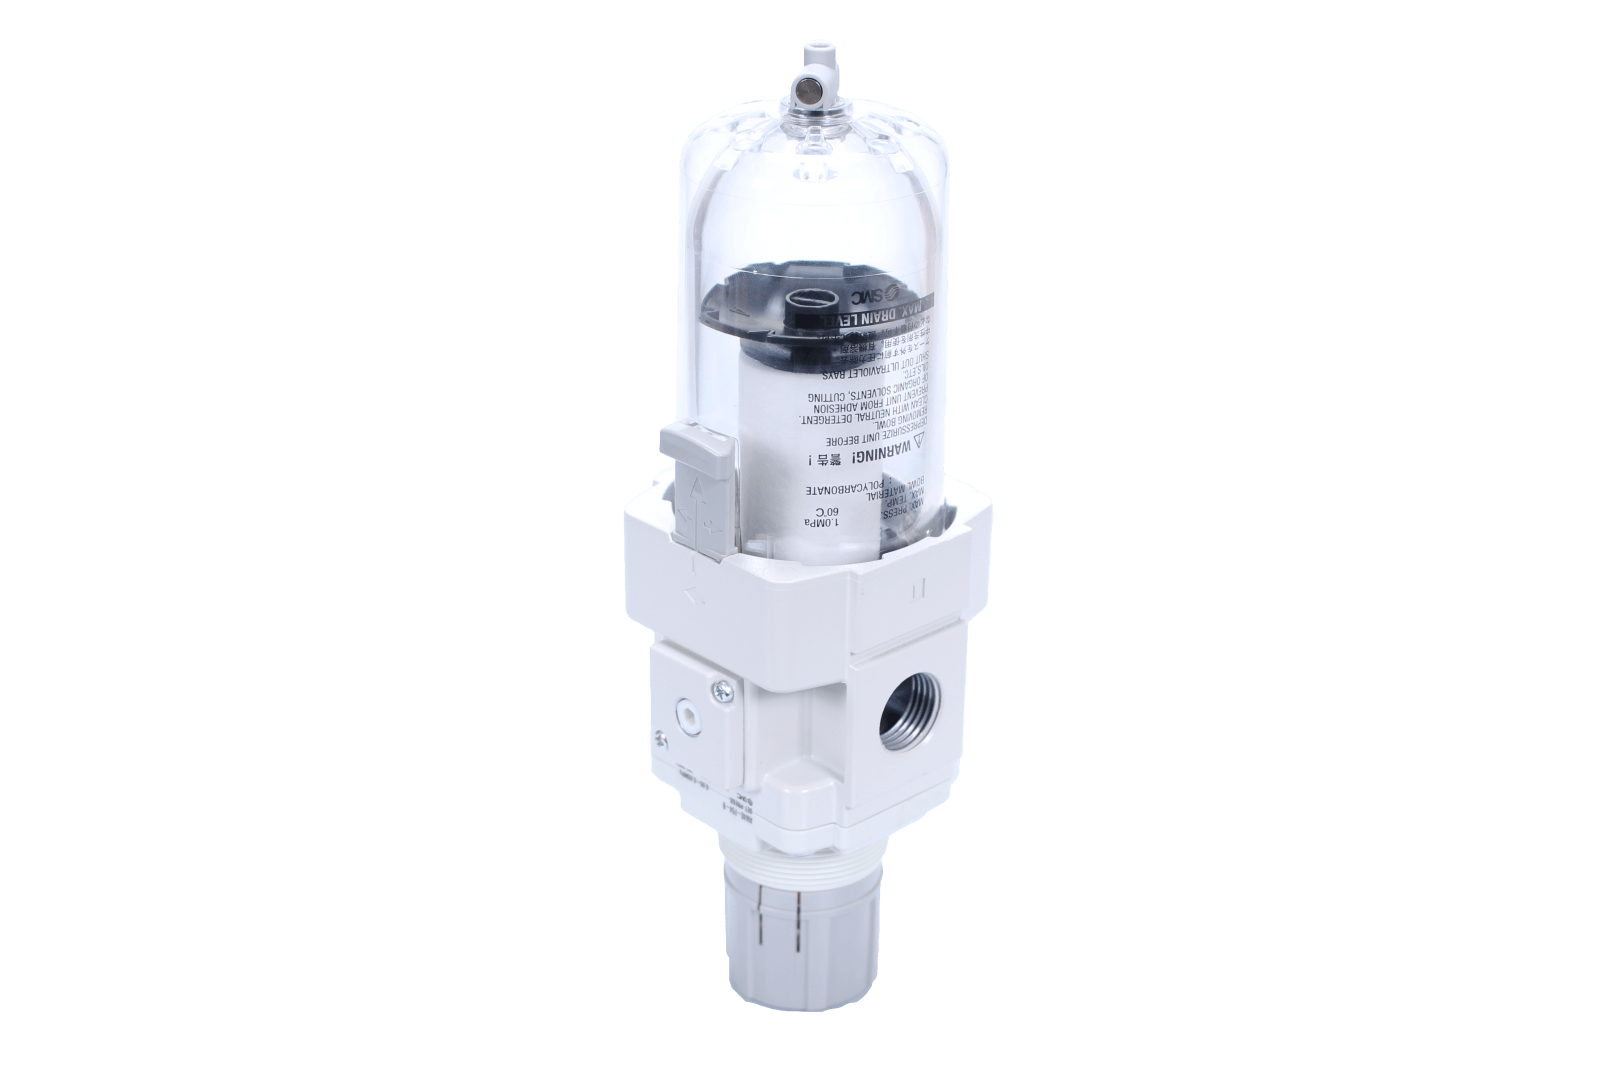 SMC AW30-F03D-B Filter//Regulator with Backflow Function